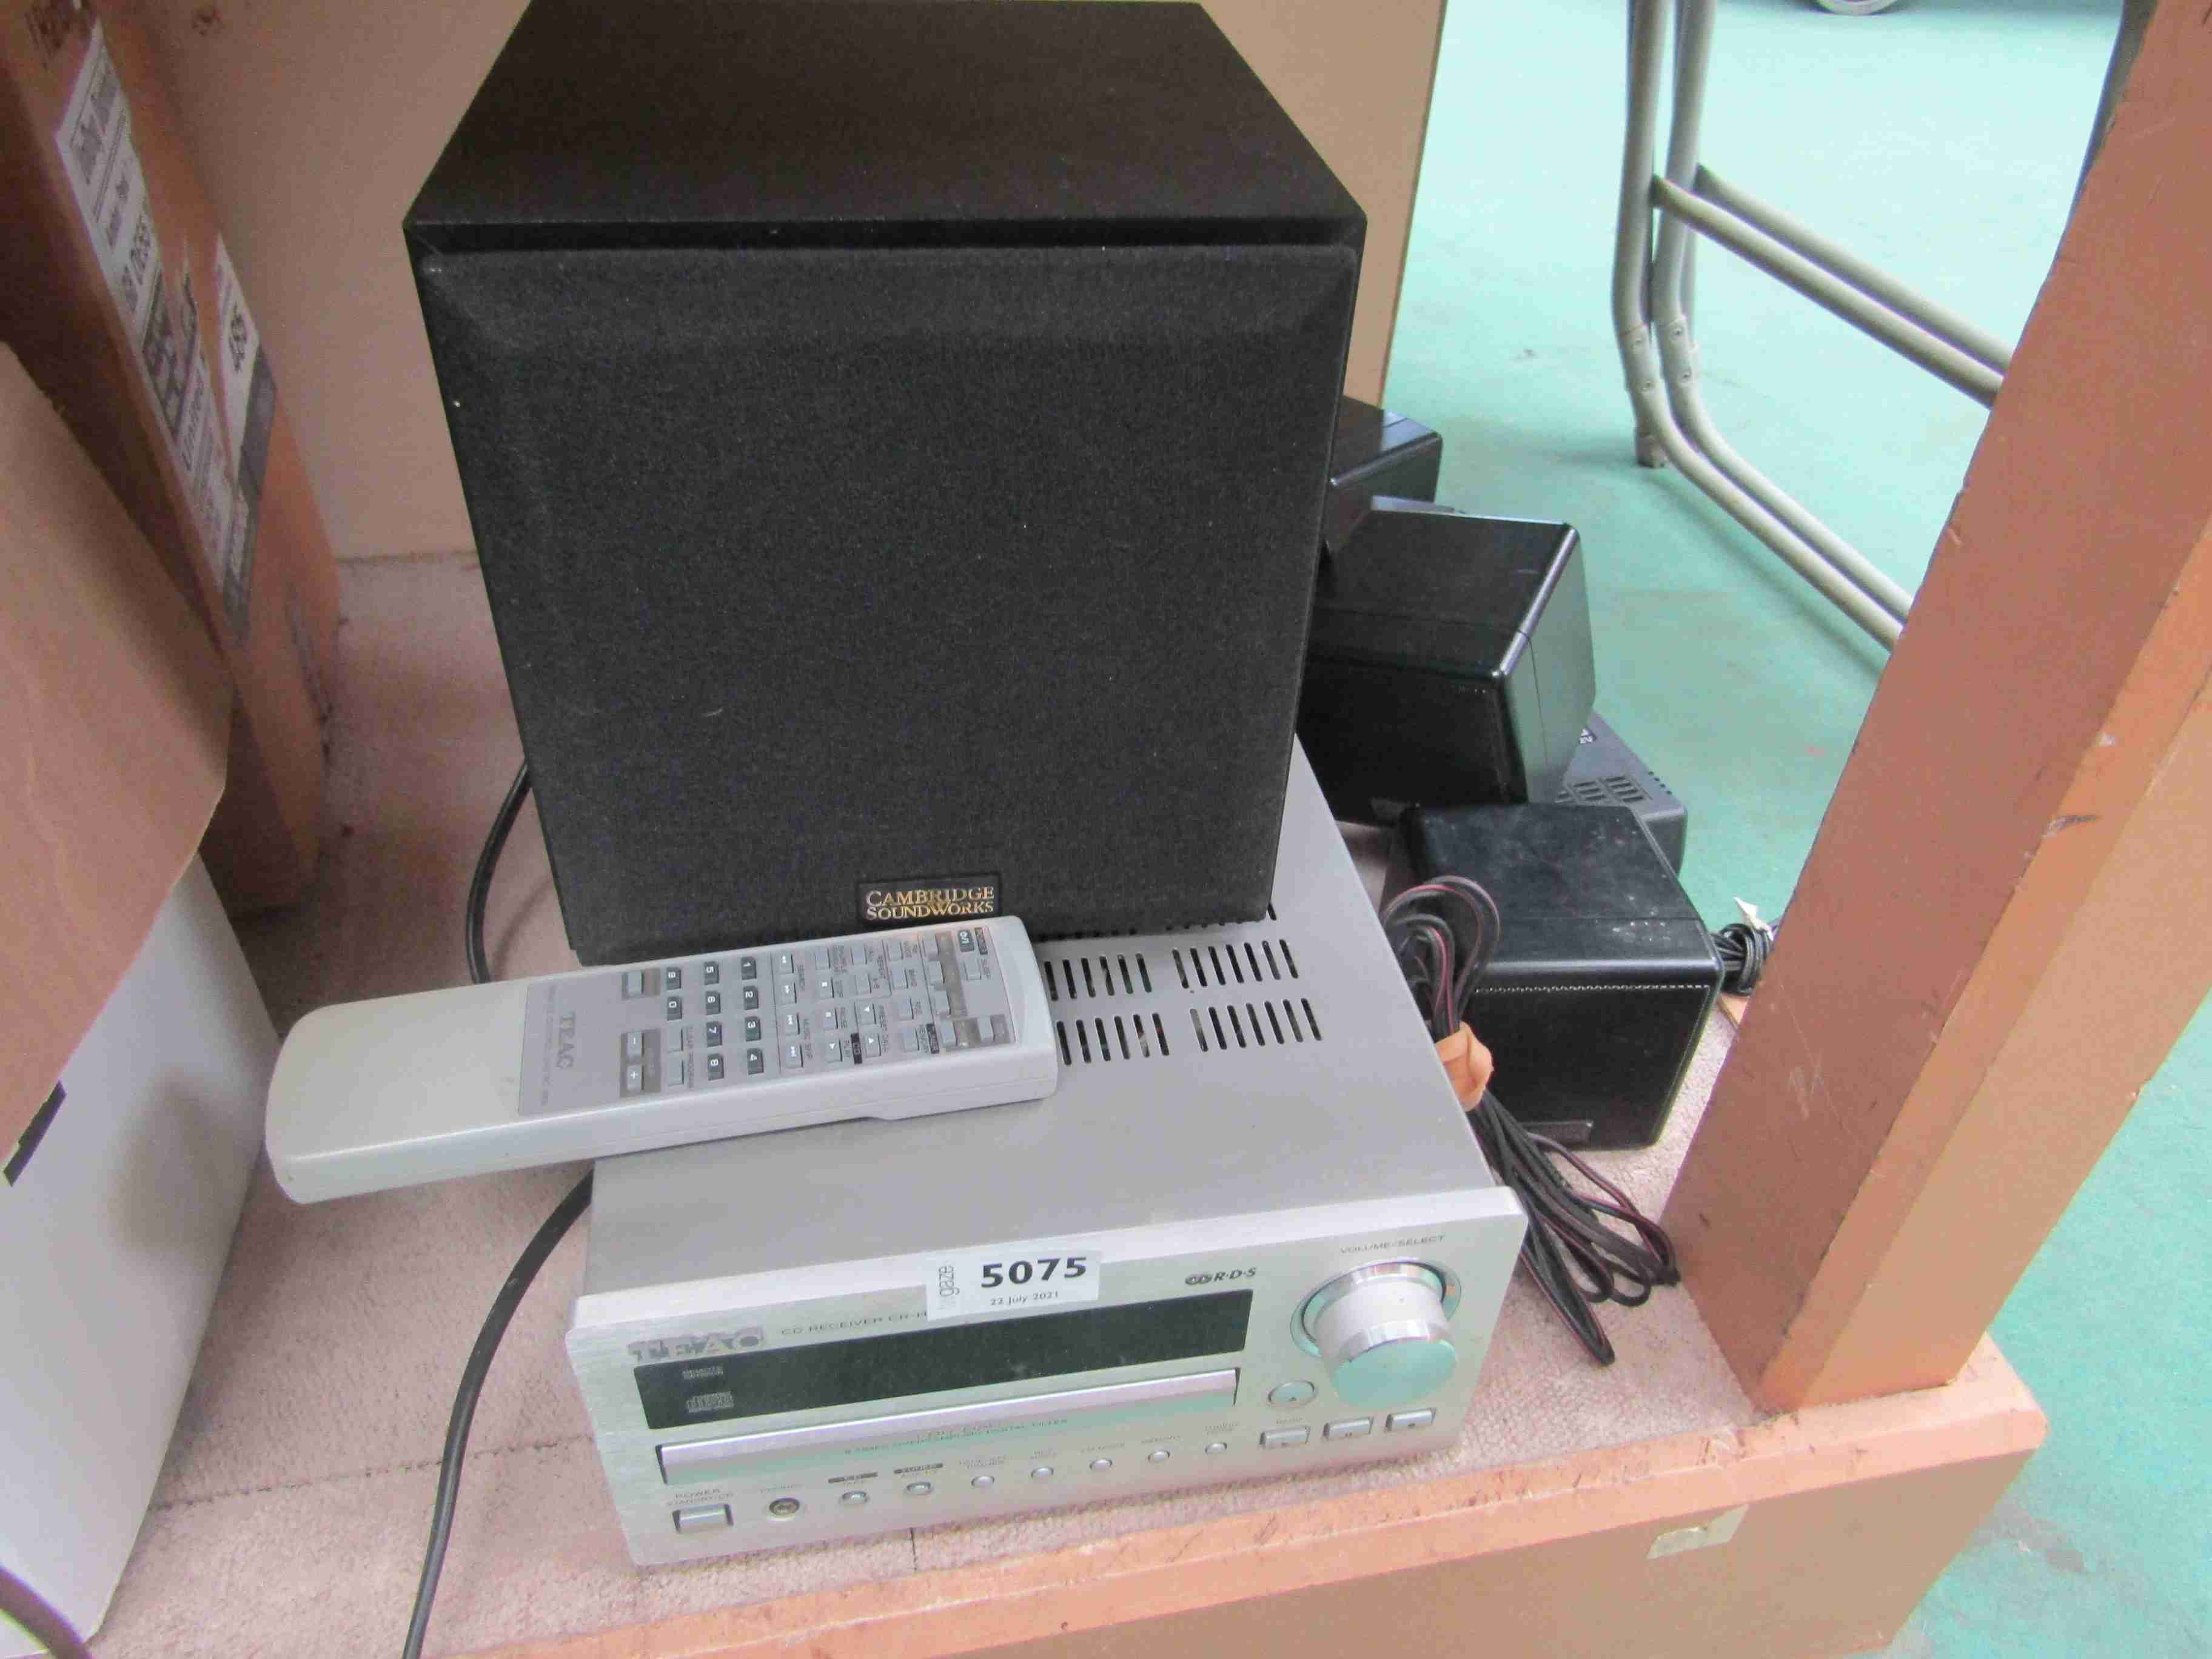 A Teac CR-H230 CD receiver and a Cambridge Soundworks FPS1600 surround sound system